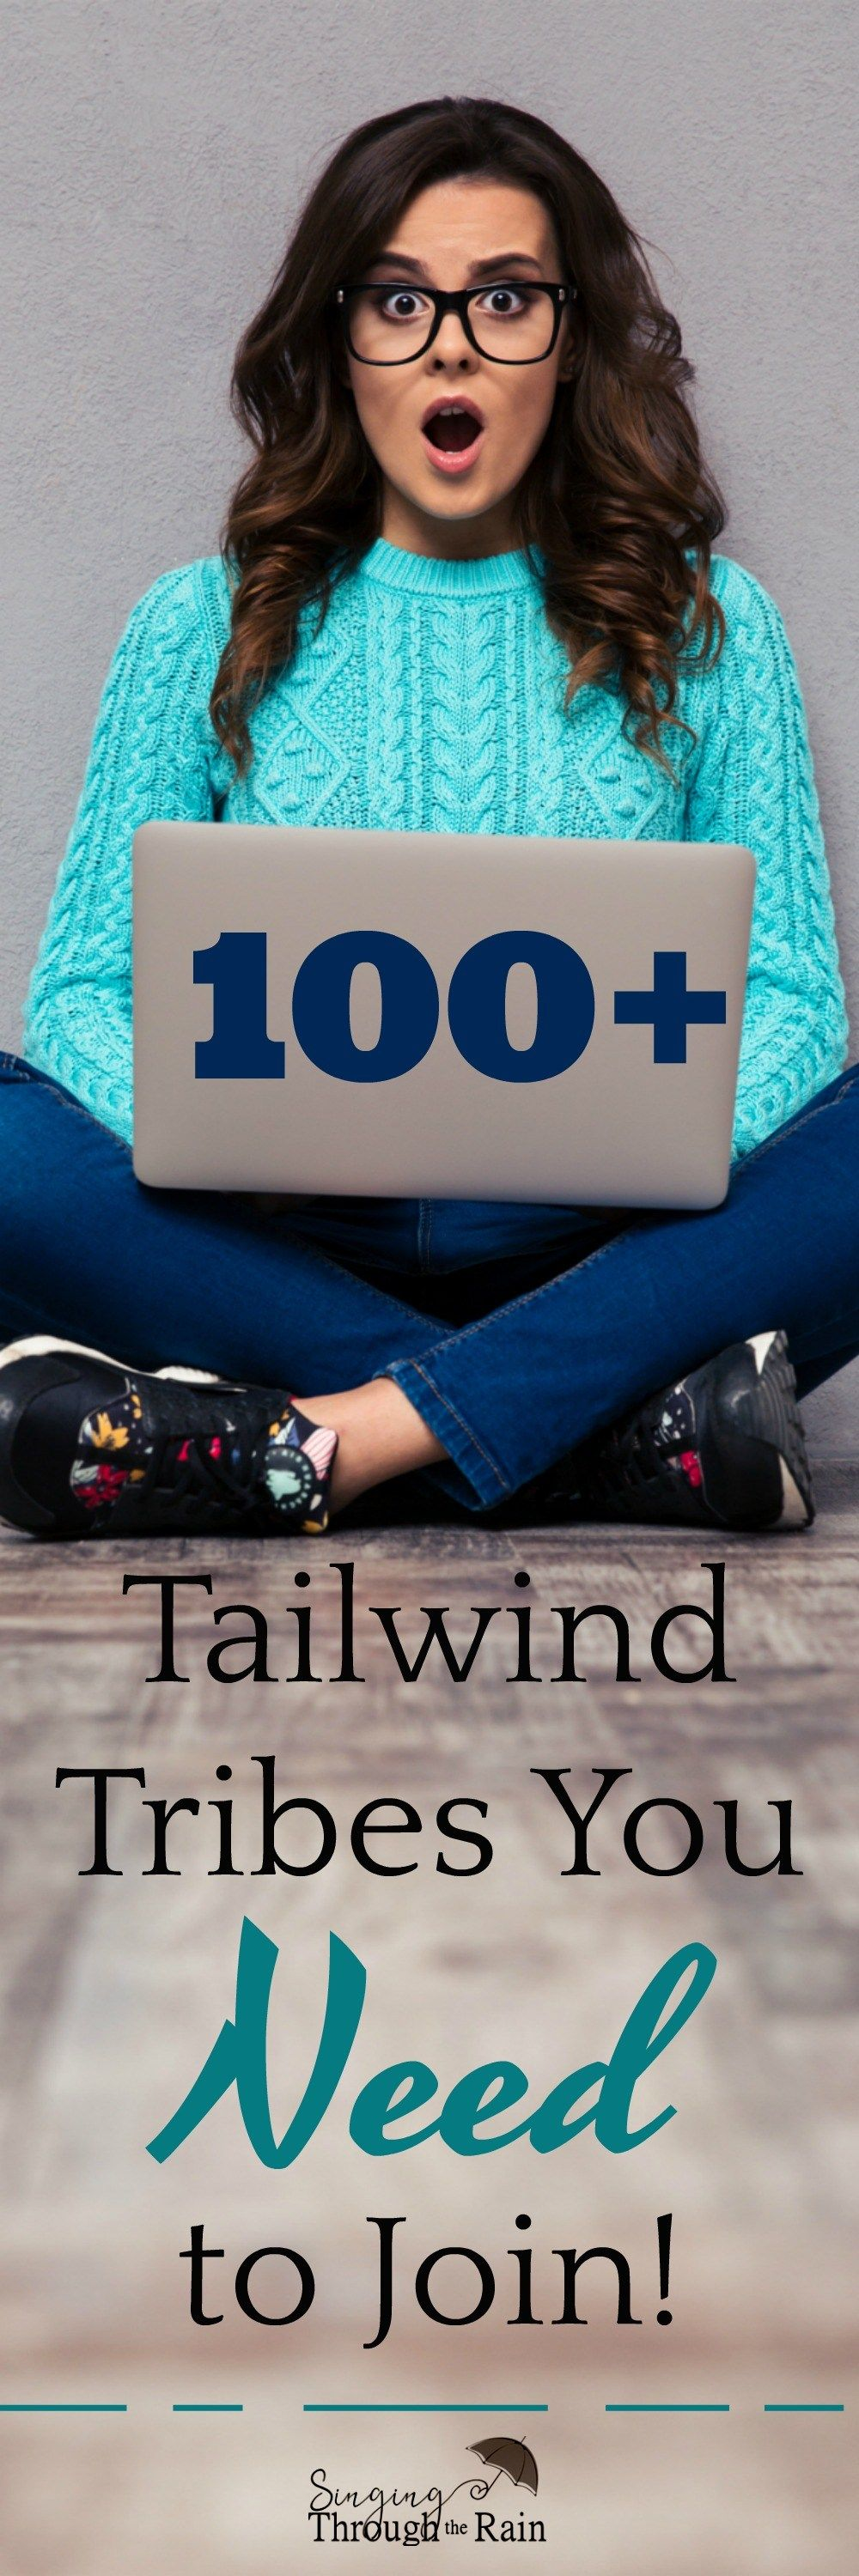 100+ Tailwind Tribes You Need to Join Today! How to